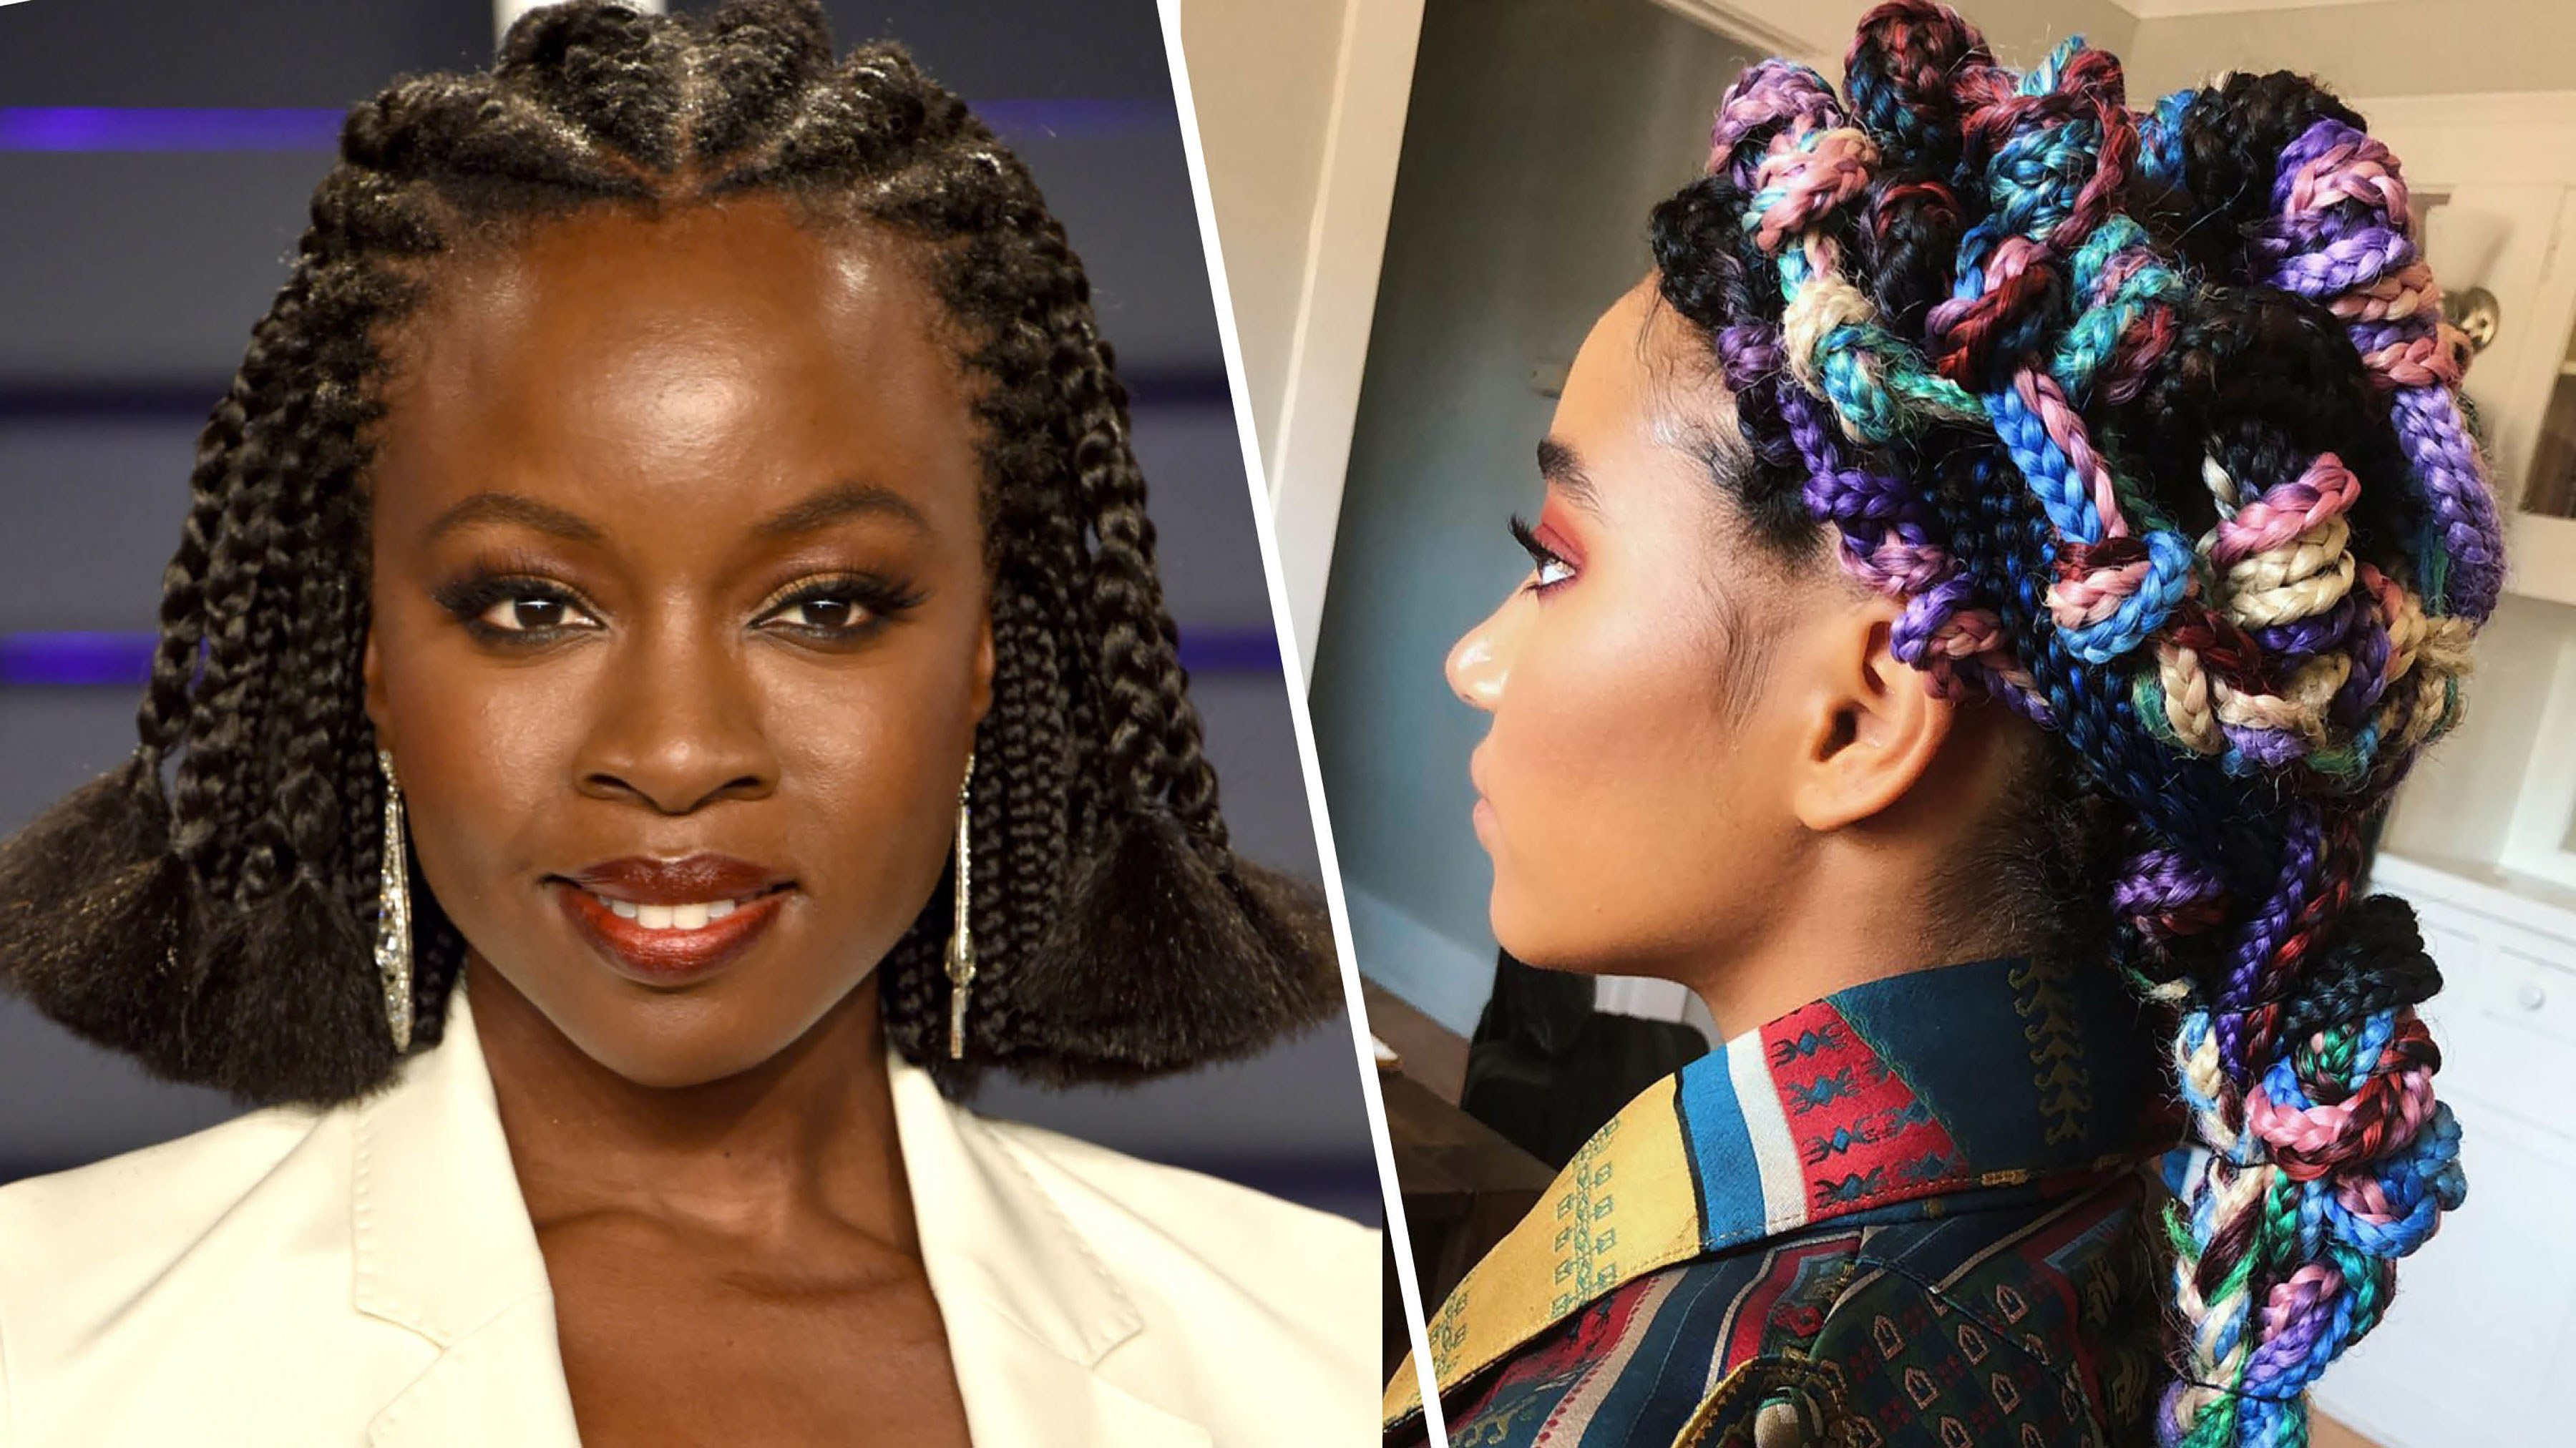 Trendy Forward Braided Hairstyles With Hair Wrap Throughout 21 Dope Box Braids Hairstyles To Try (View 11 of 20)